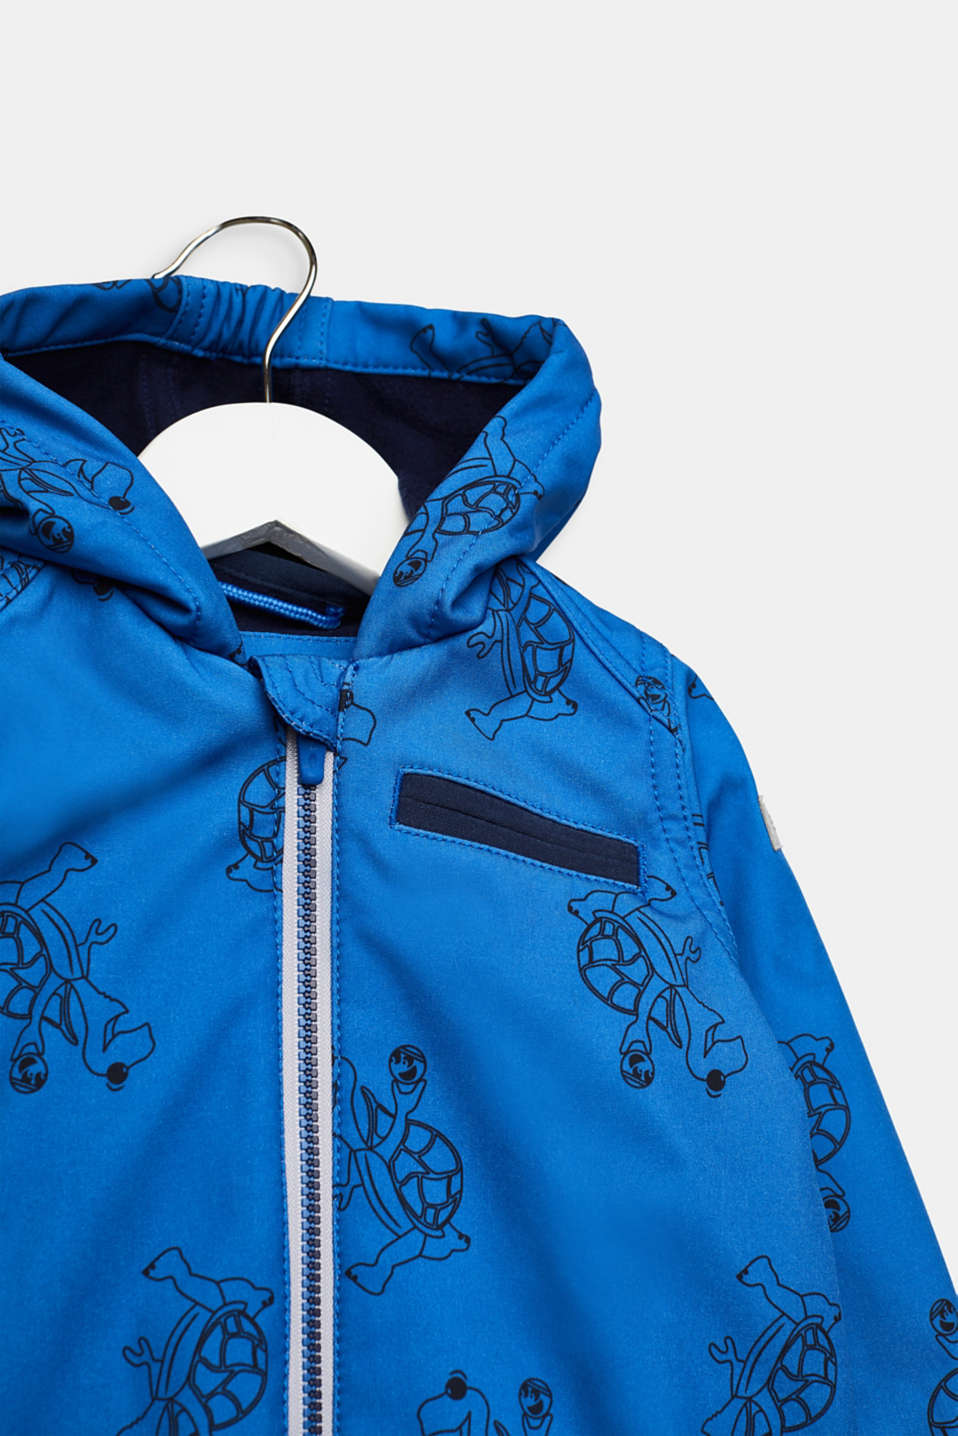 Softshell jacket with fleece on the inside, LCELECTRIC BLUE, detail image number 2